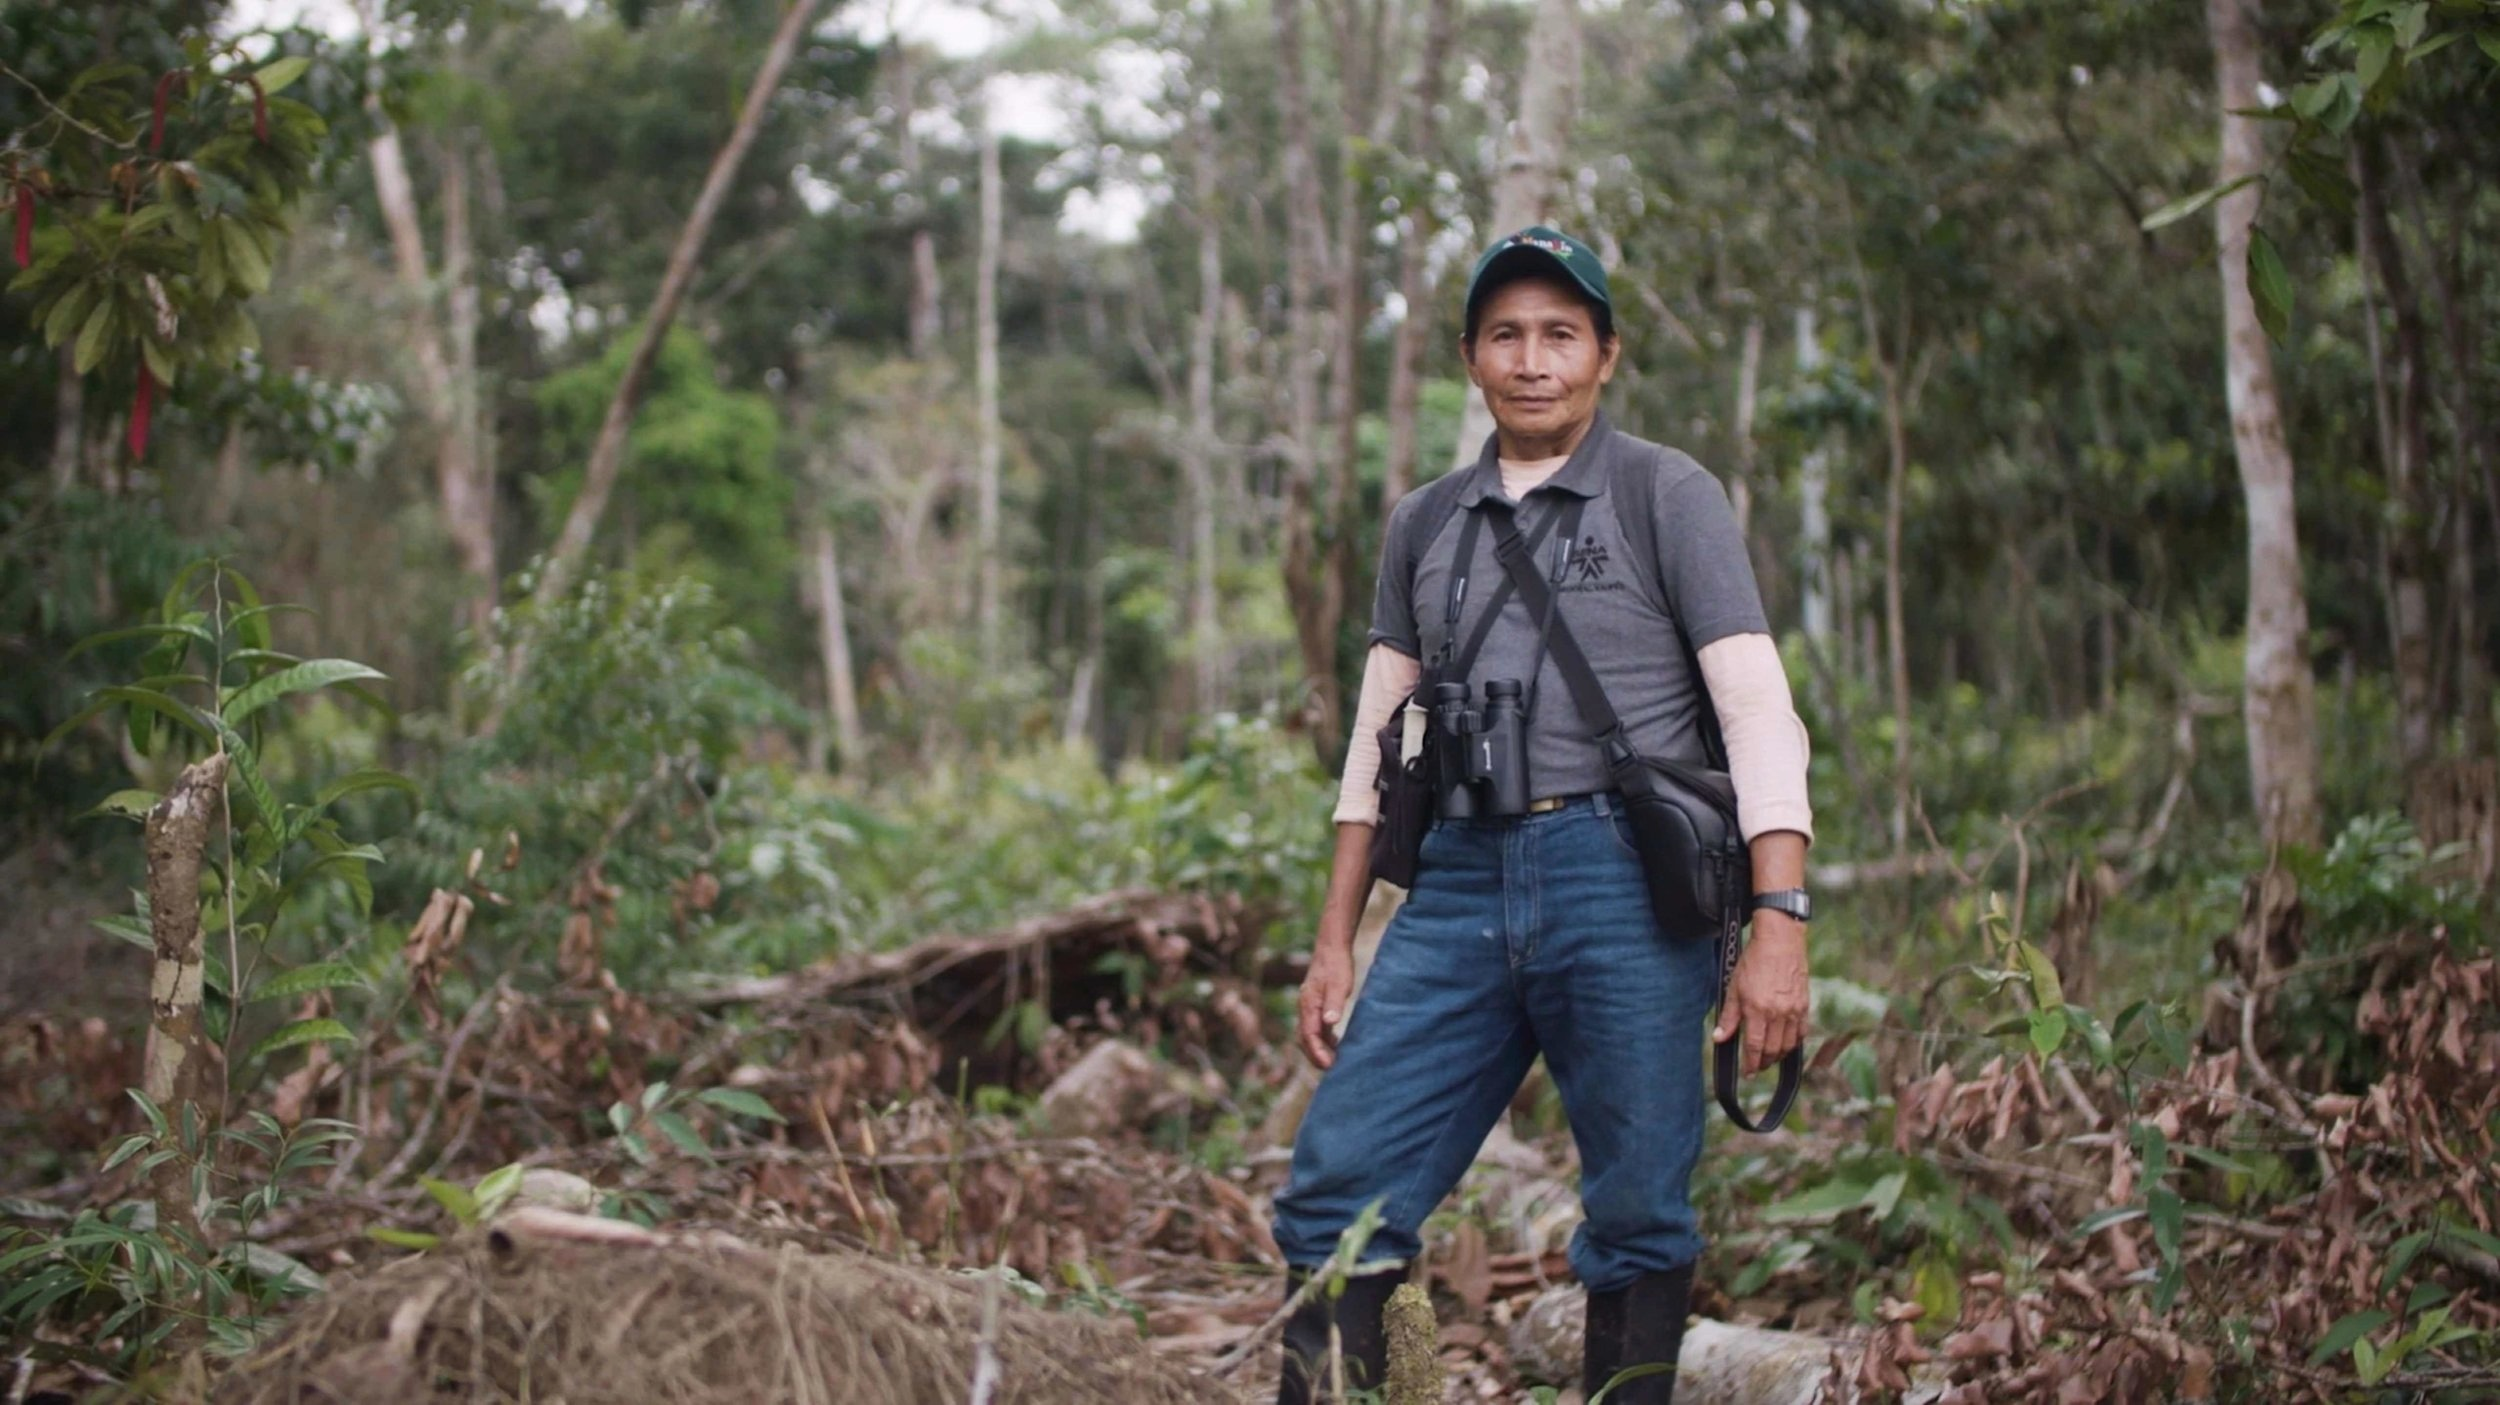 Miguel Portura is a Tucano native who lives in Mitú and works as a birding guide for both national and international clients. He was also one of the protagonists of 'The Birders: Mitú'